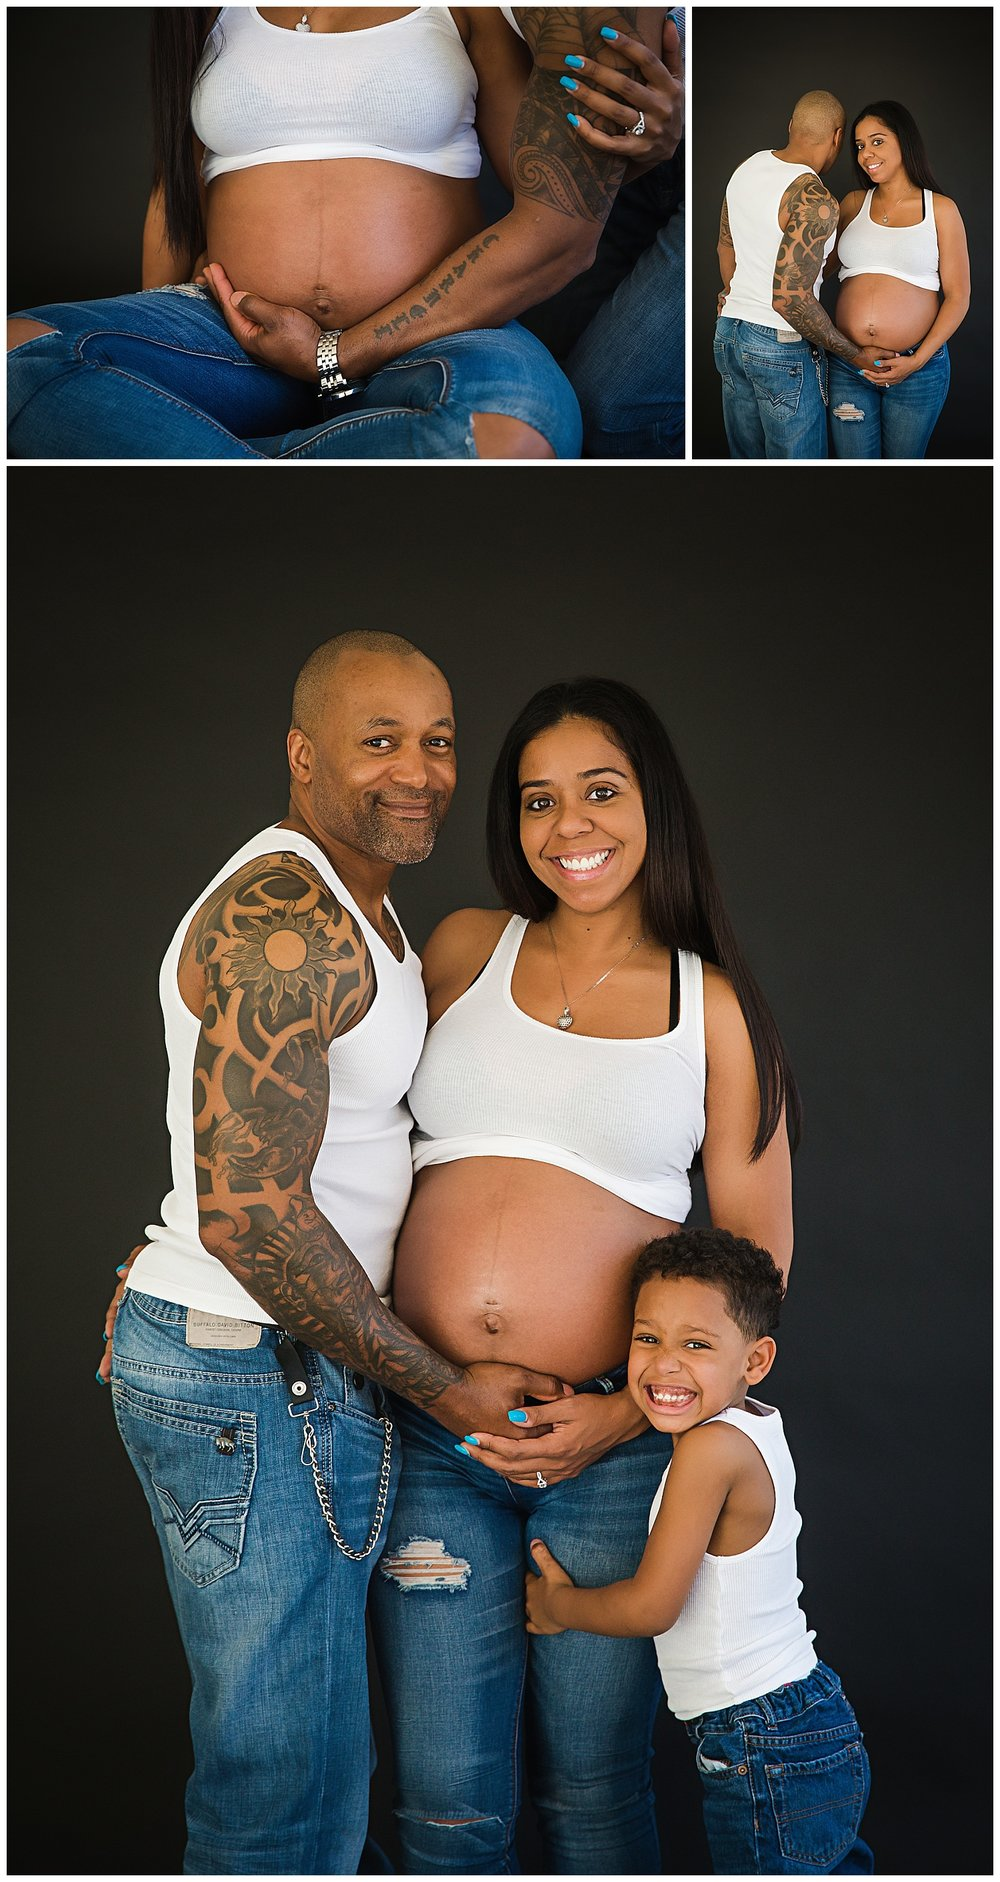 dad and son hugging pregnant mom's belly in maternity photos in burlington new jersey newborn photographer